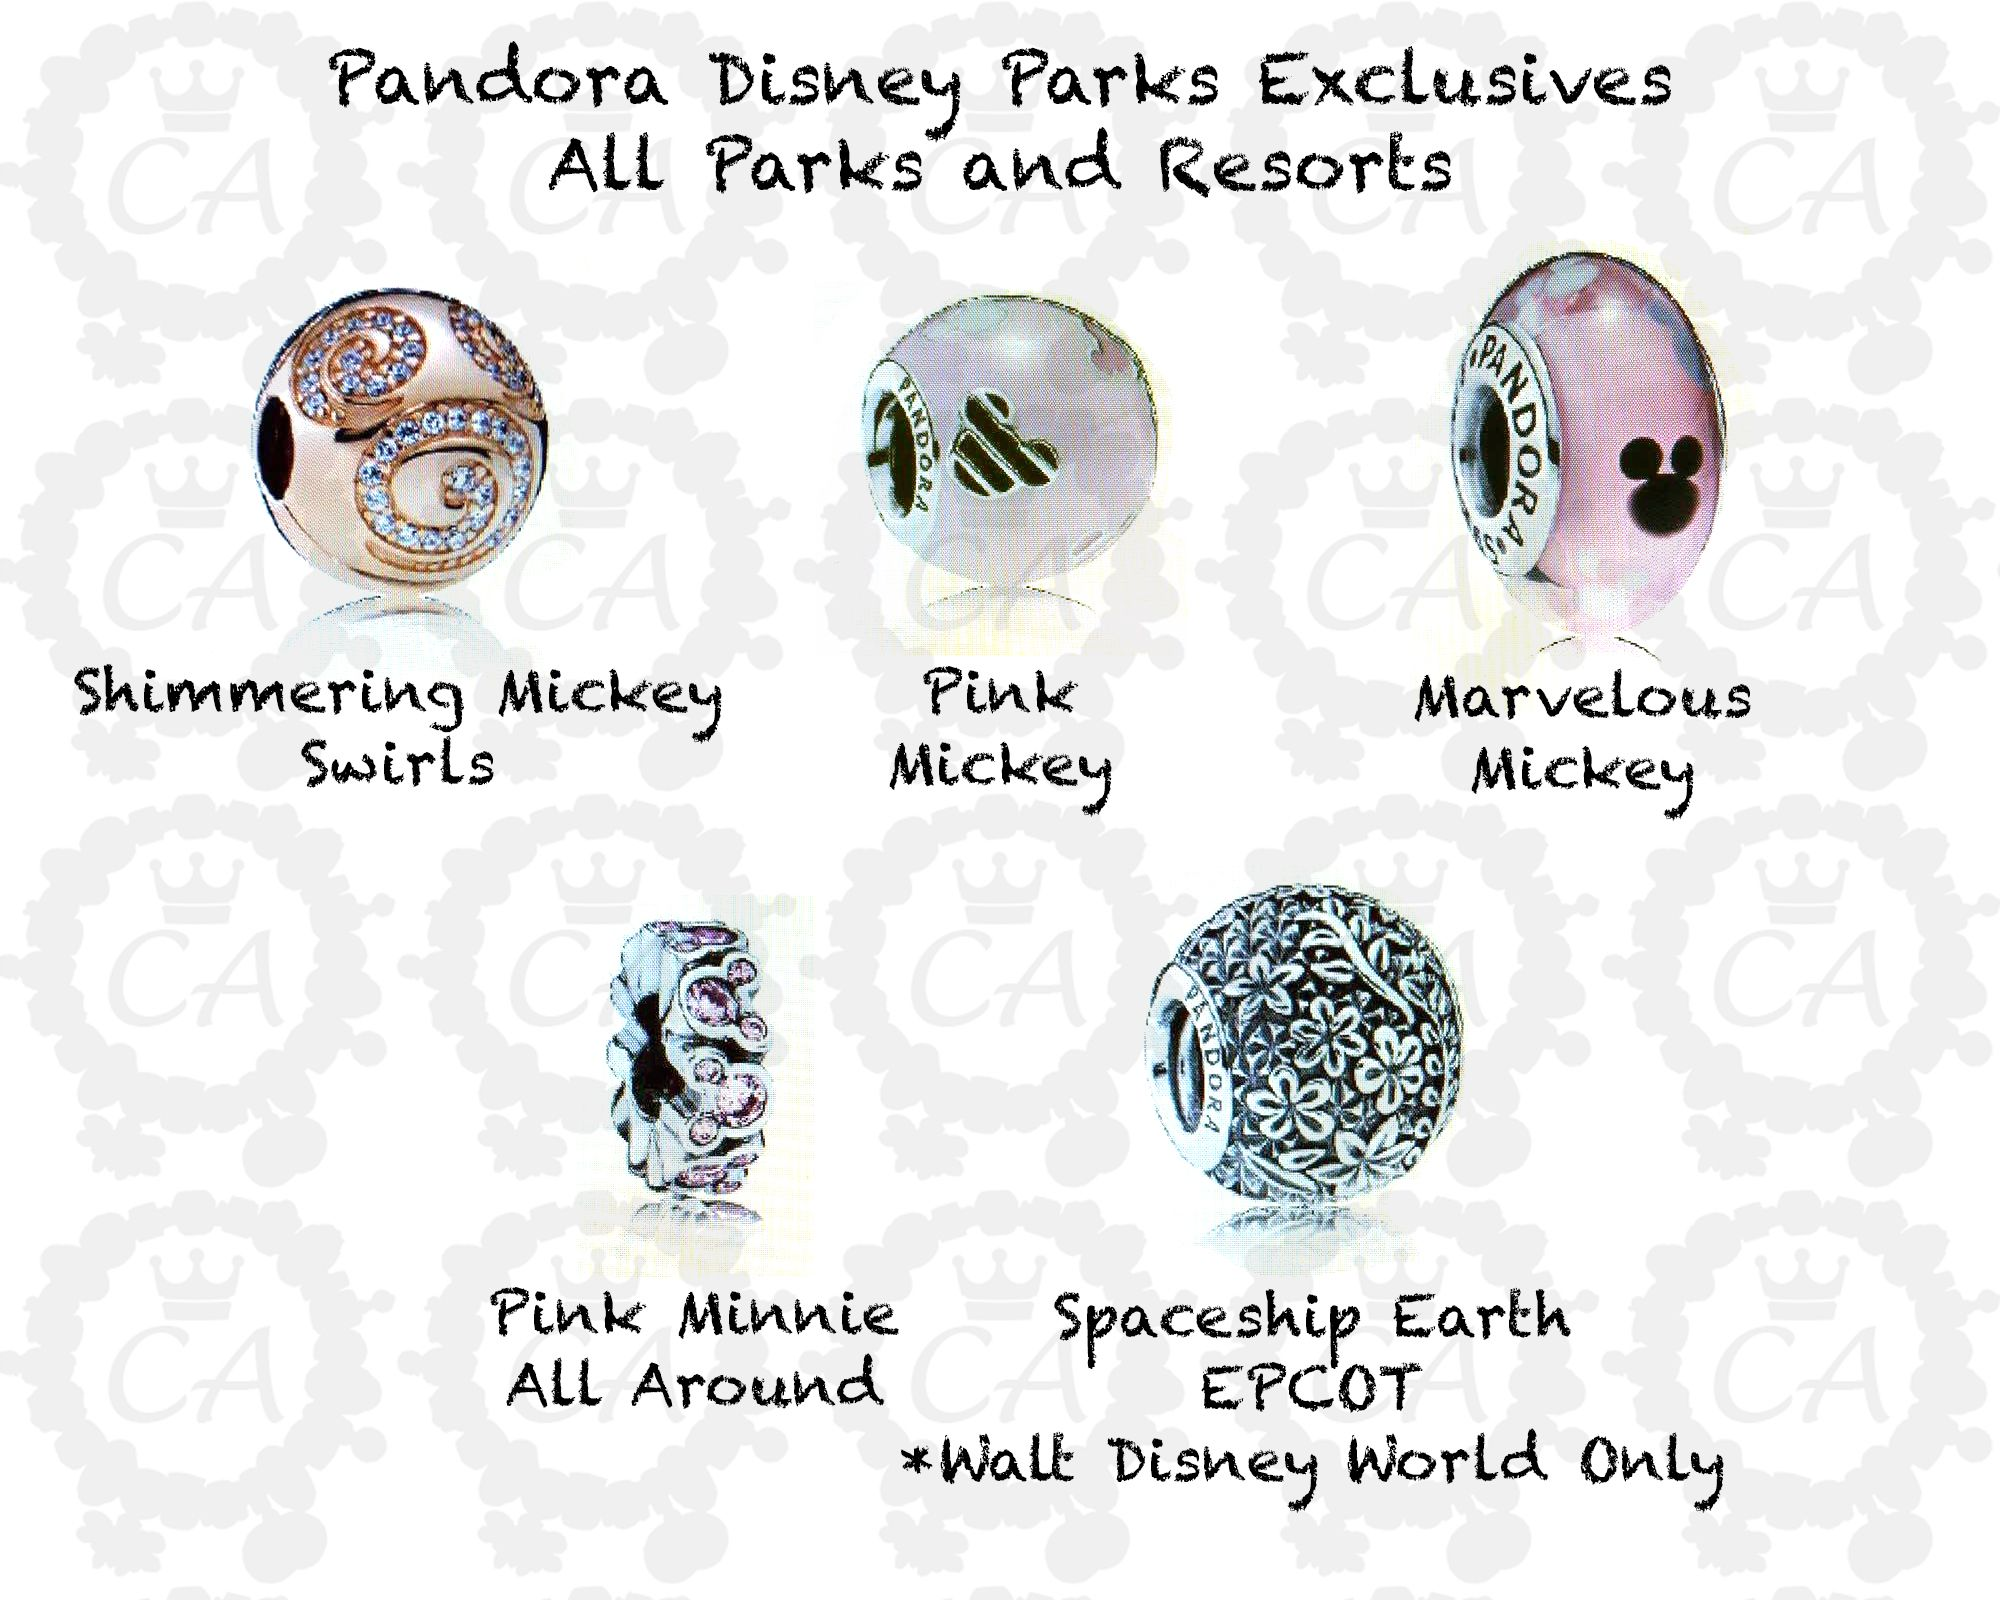 db56ad622 New Pandora Disney Parks Exclusive Spring/Summer 2016 Preview ...